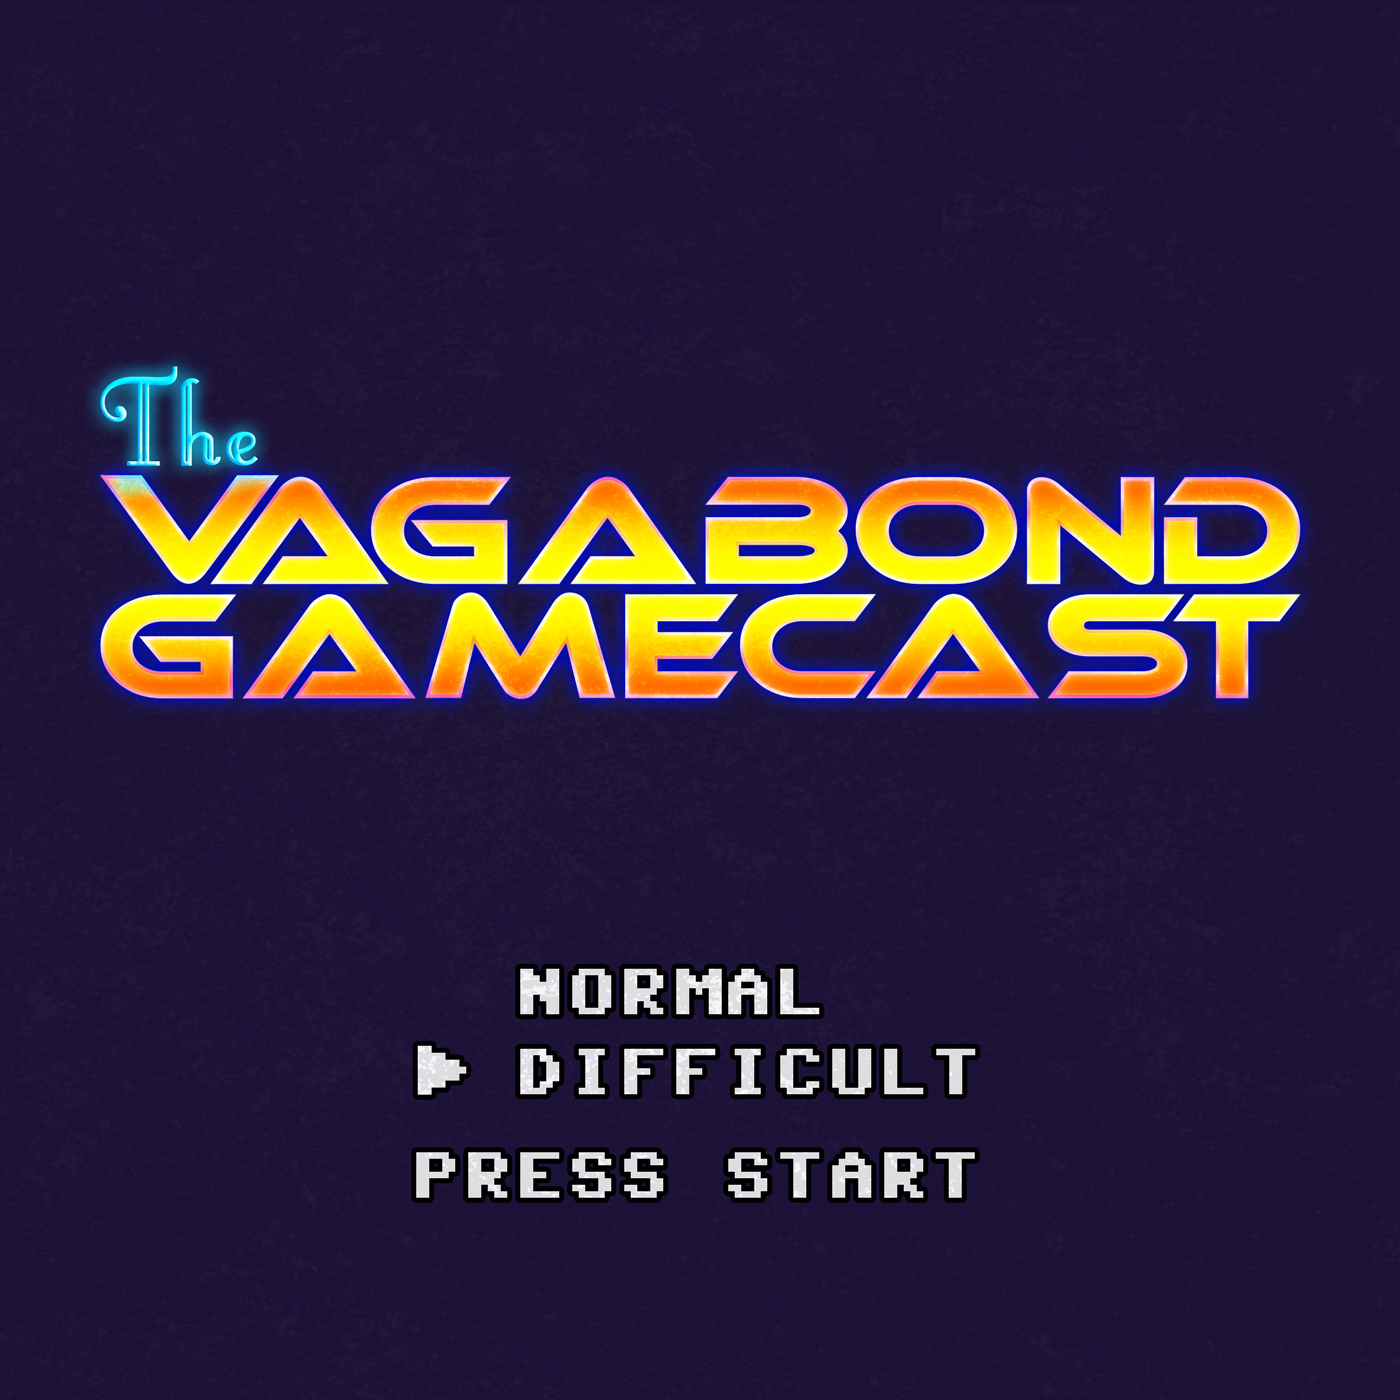 The Vagabond Gamecast